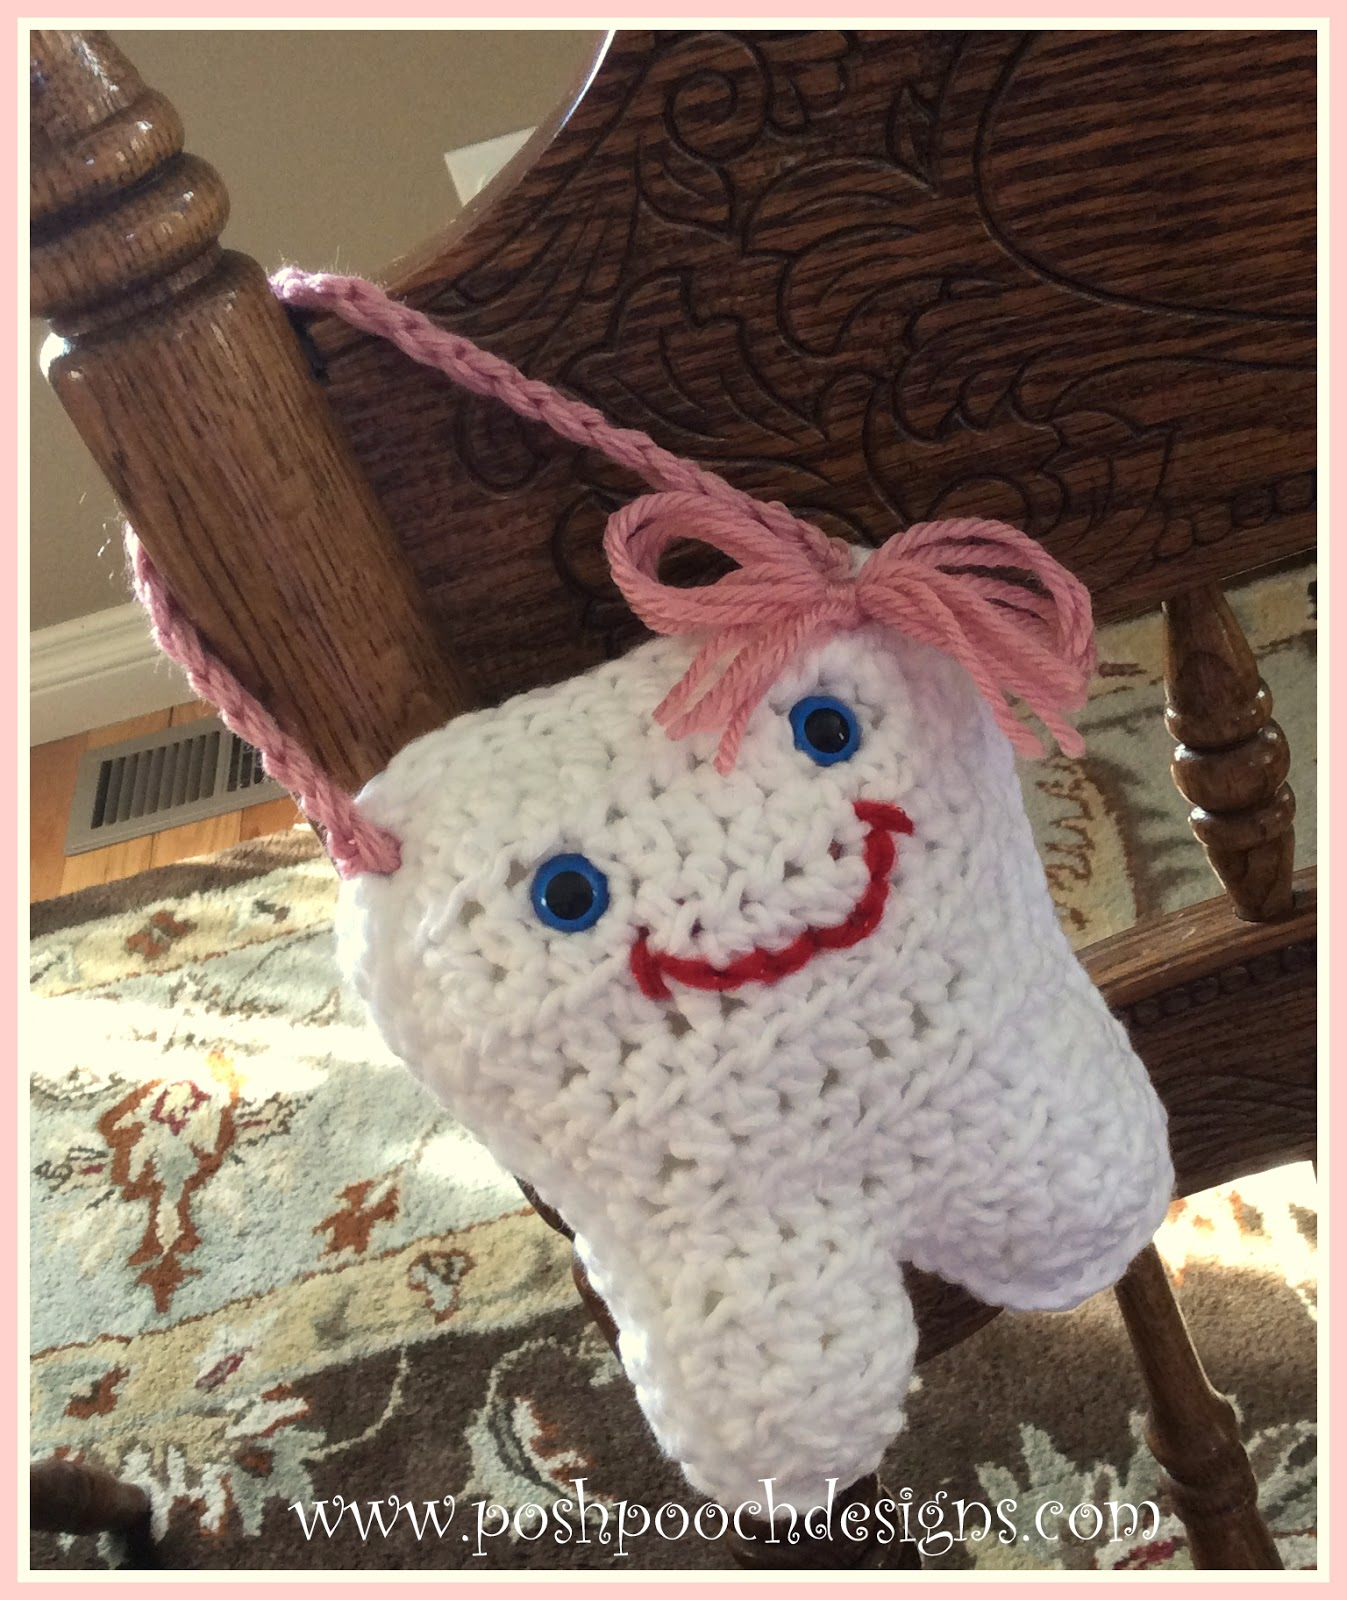 Posh Pooch Designs Dog Clothes Tooth Fairy Pillow Posh